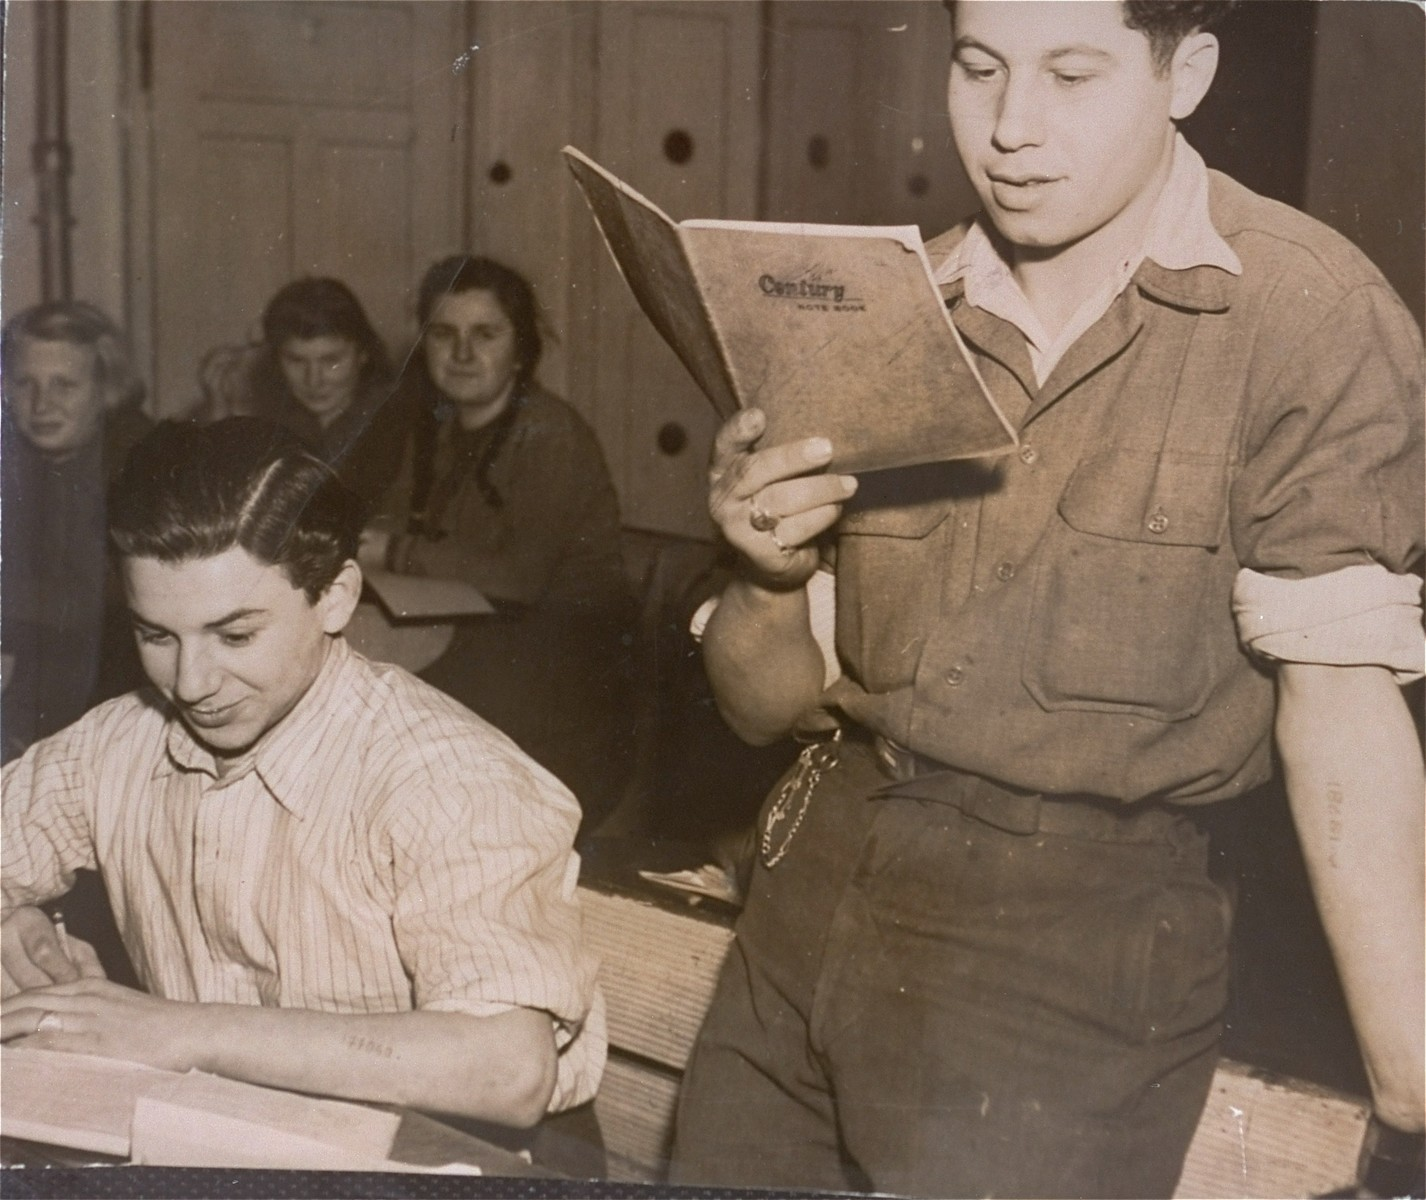 A DP youth reads to his fellow classmates at the Kloster Indersdorf DP children's center.  Standing on the right is Jakob Bulwa, a child survivor of Auschwitz and Flossenbuerg.